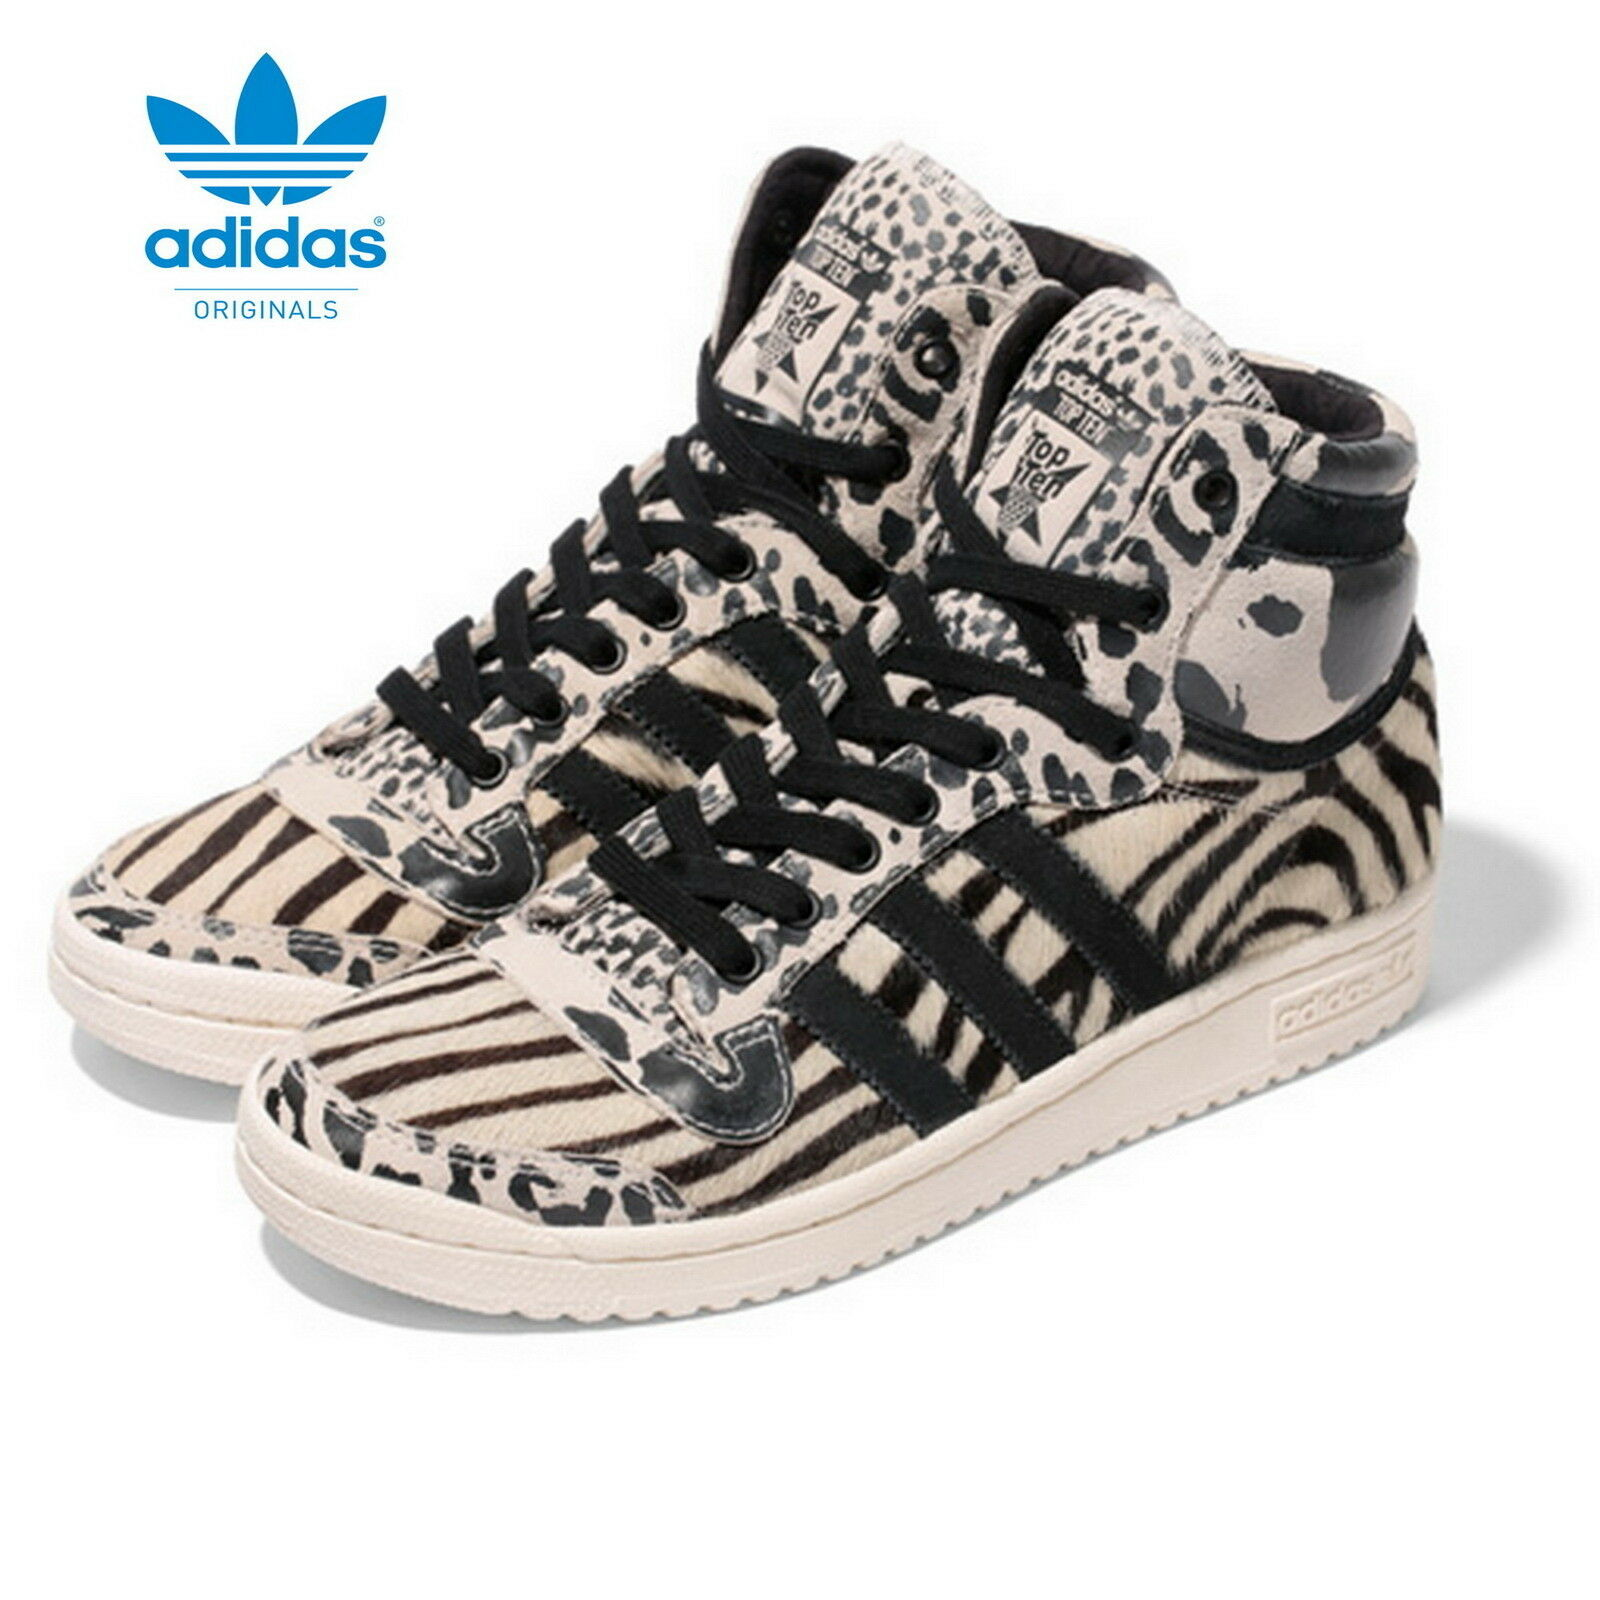 Adidas top ten Hi señora Originals animal patrón m25118 neu&ovp